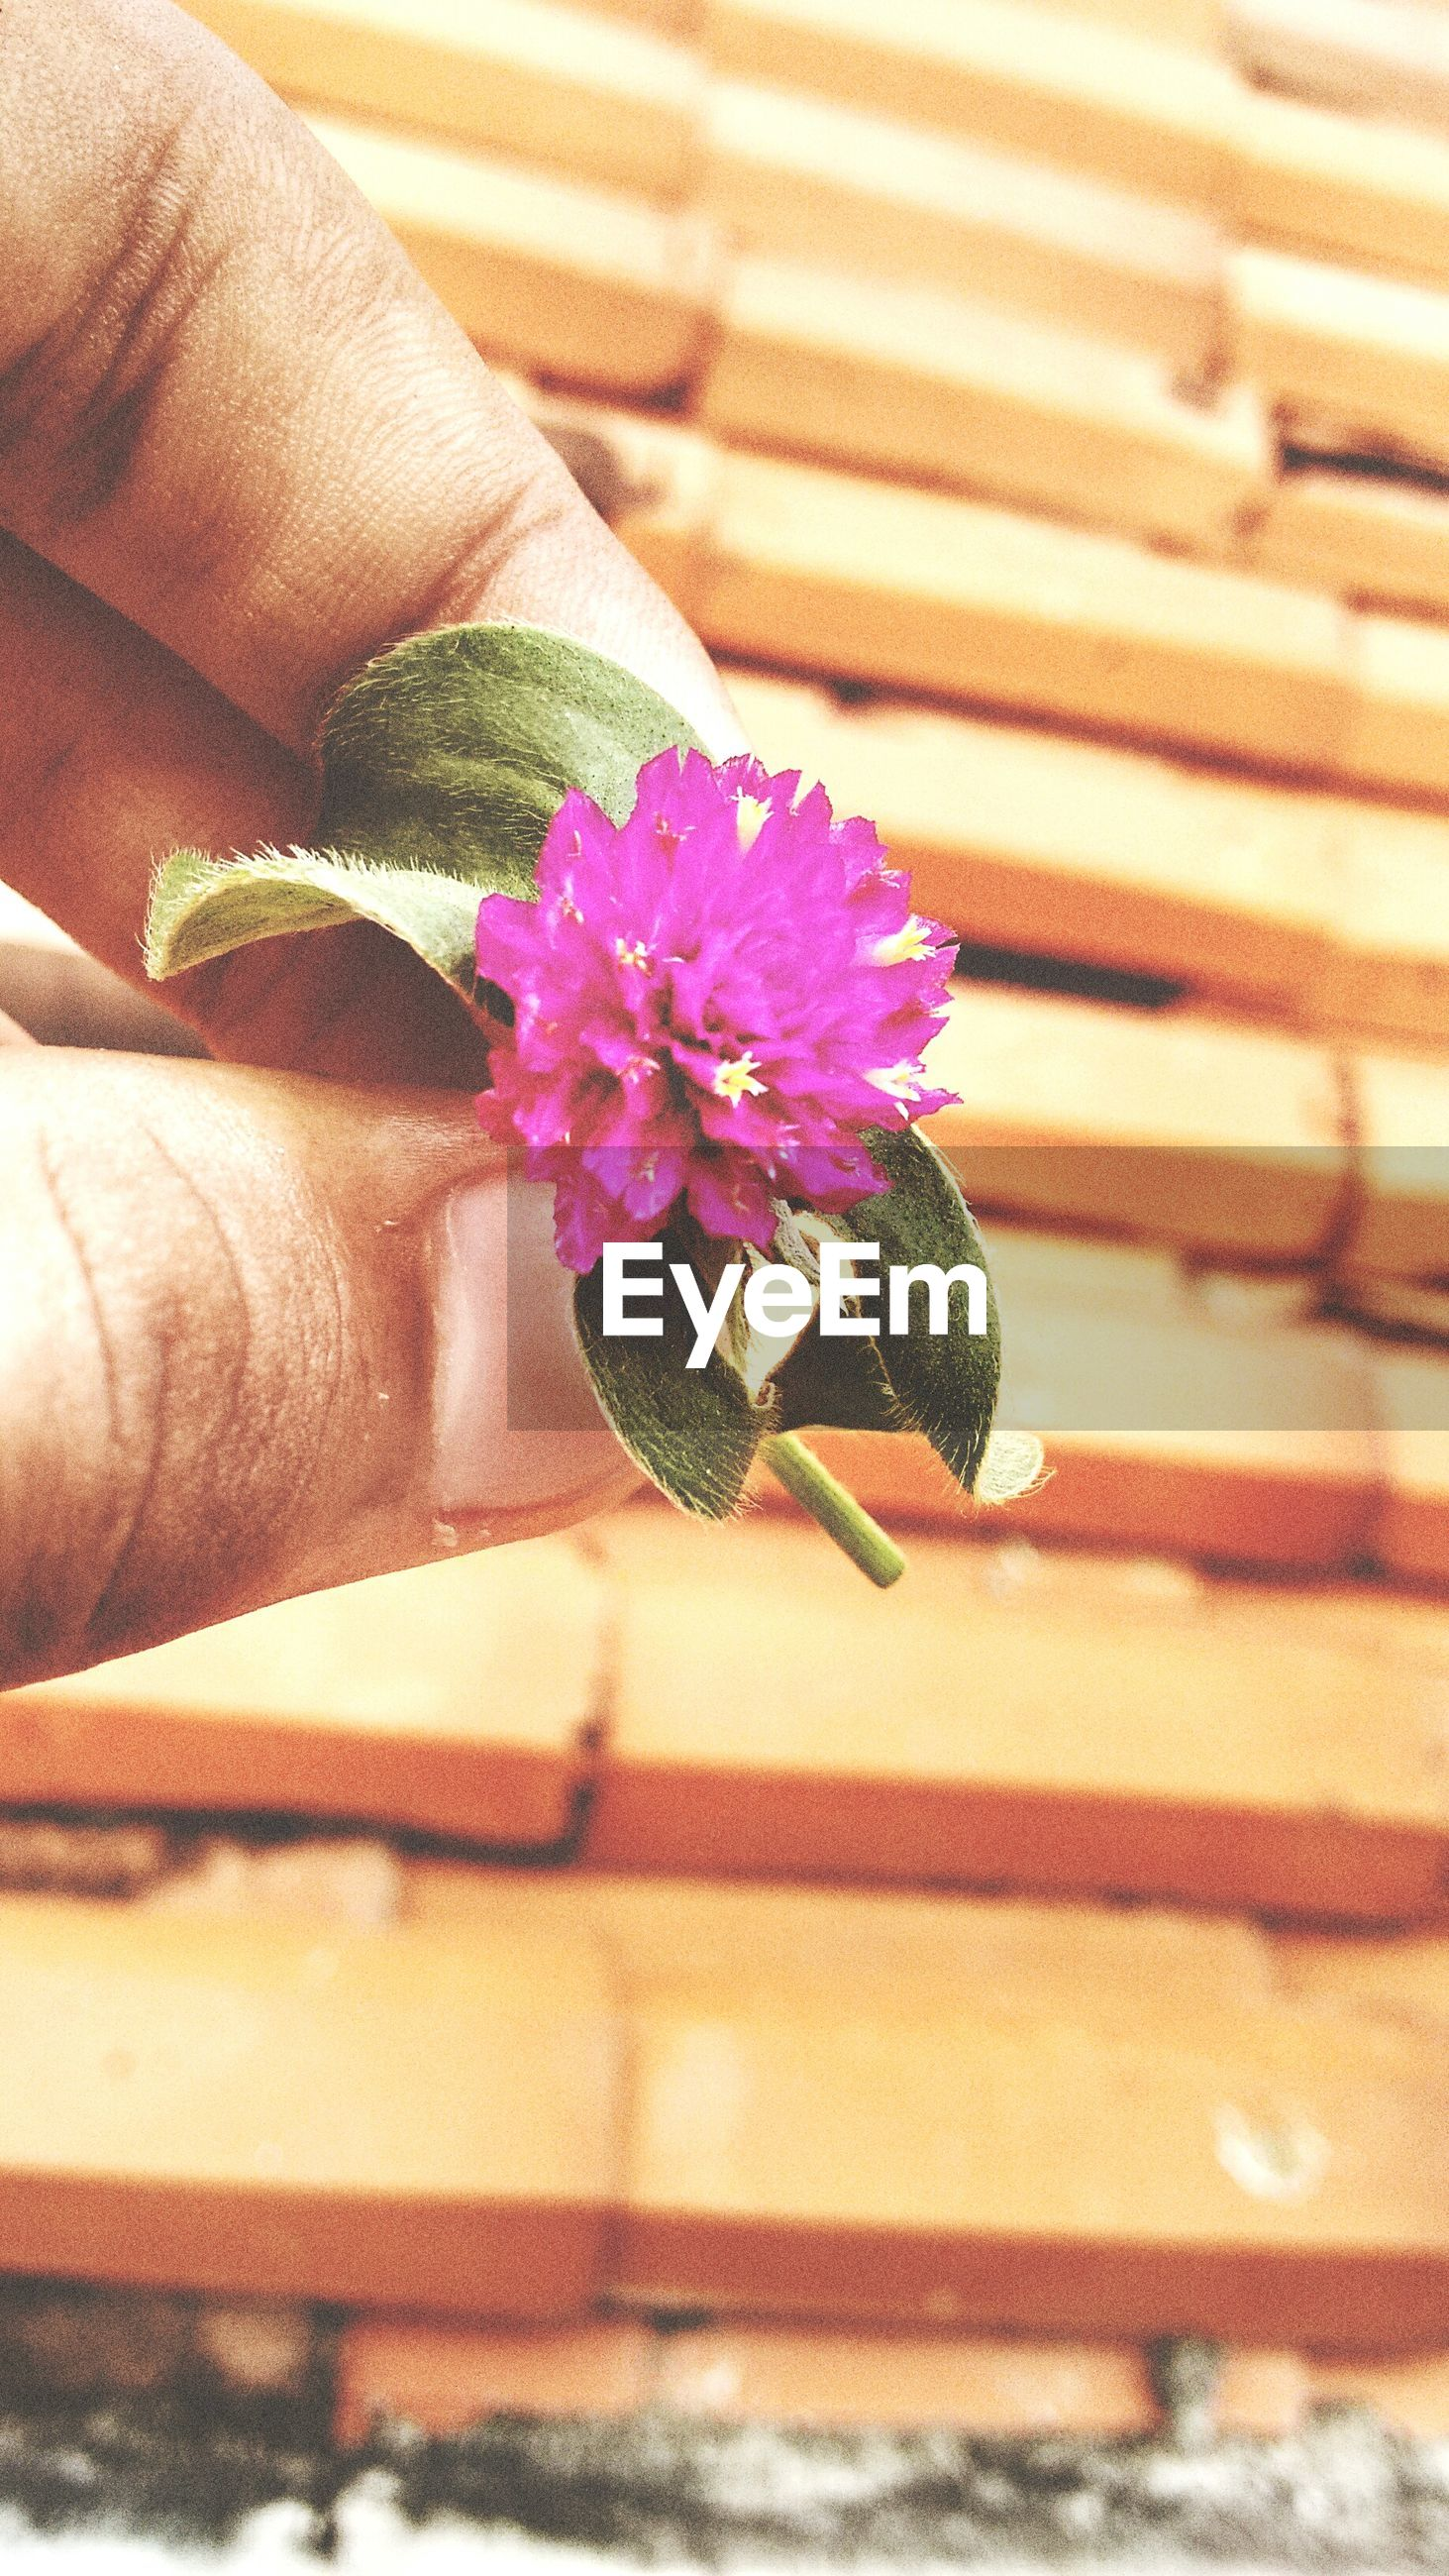 flower, freshness, petal, fragility, flower head, pink color, growth, plant, close-up, beauty in nature, potted plant, indoors, vase, single flower, nature, blooming, wall - building feature, focus on foreground, selective focus, pink